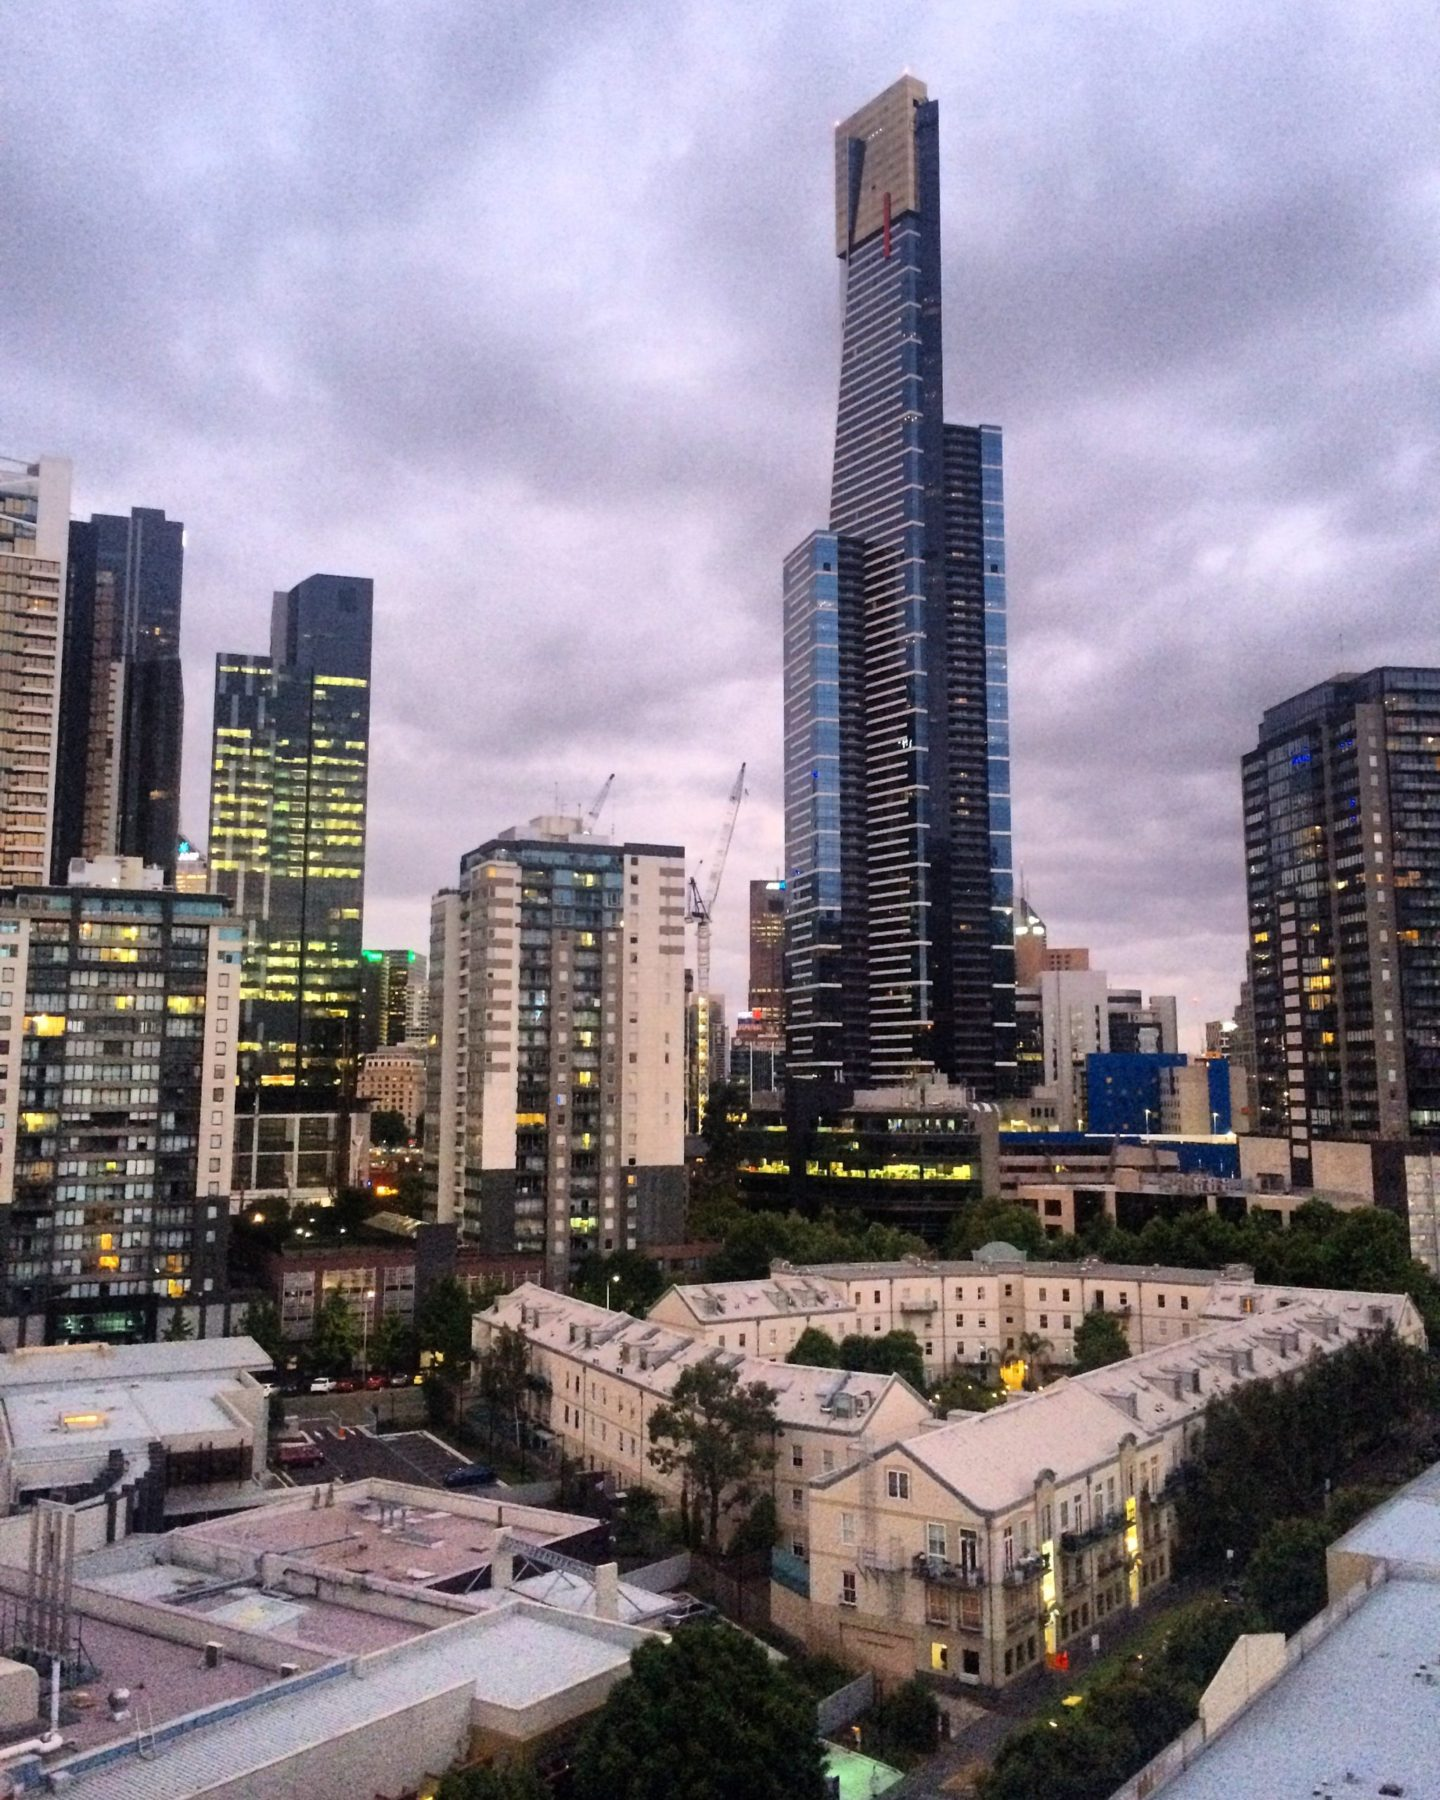 Guide to My Favorite City: Melbourne